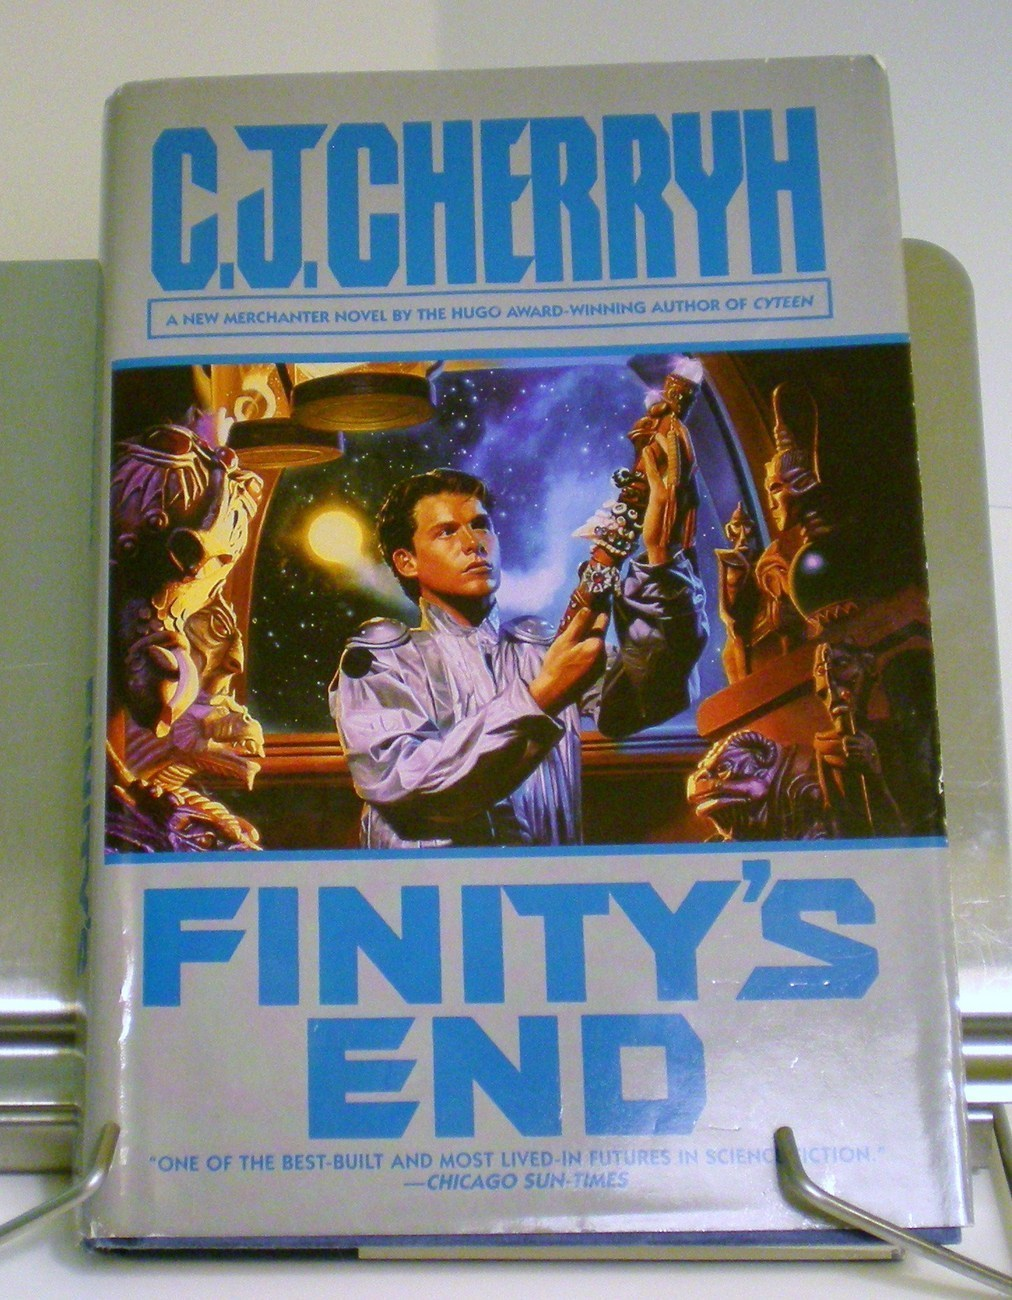 Finity's End by C. J. Cherryh Hardcover 1997 first printing